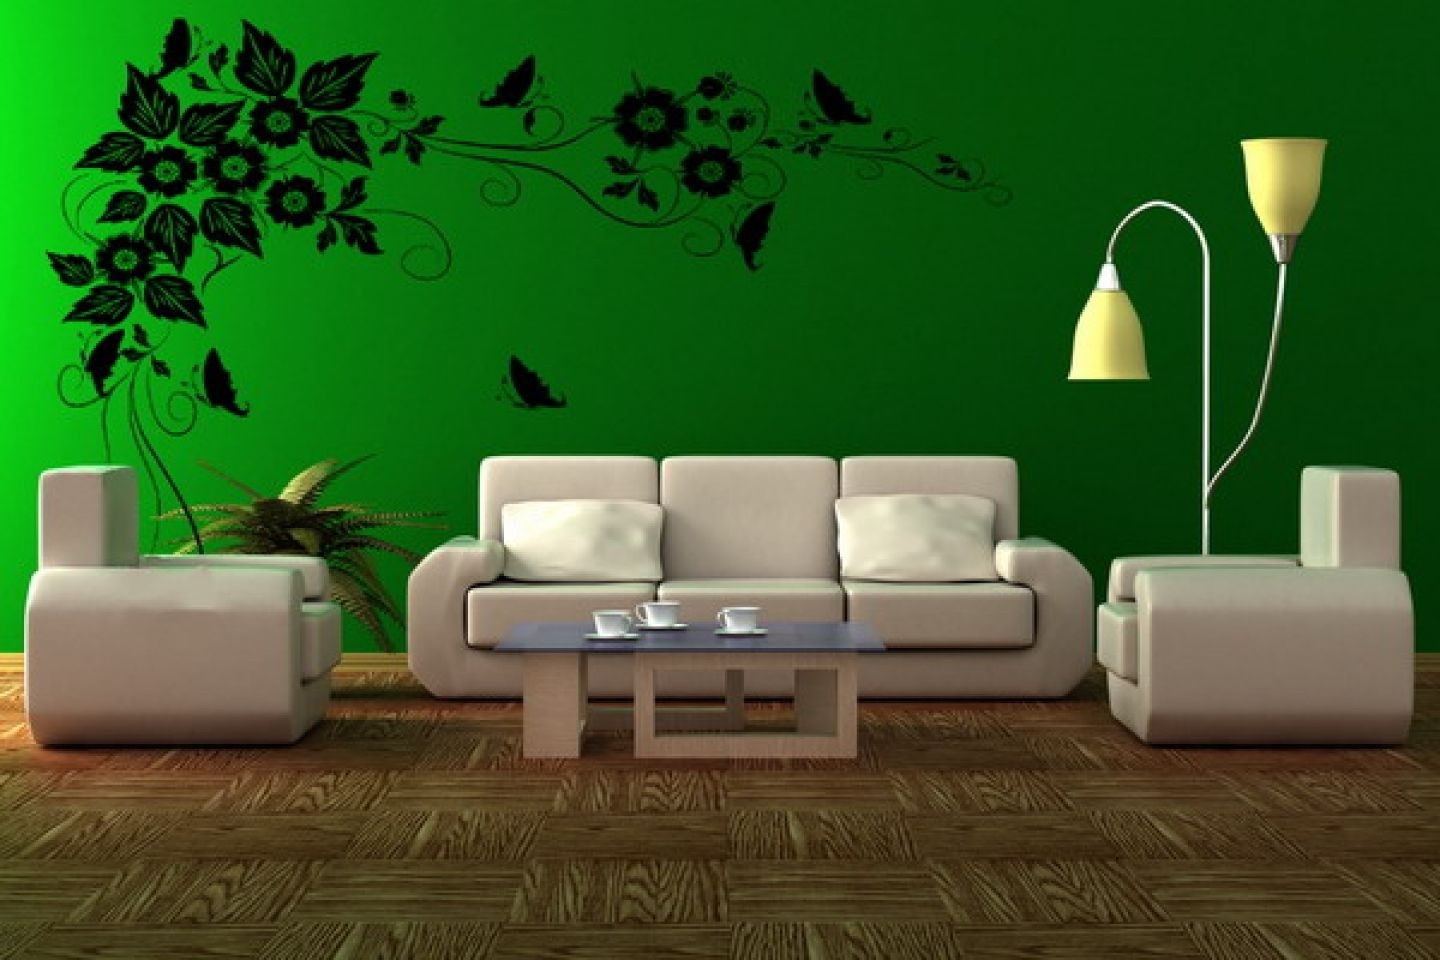 Green Rooms Green Rooms Design .designs Green Green Bedroom Ideas Green